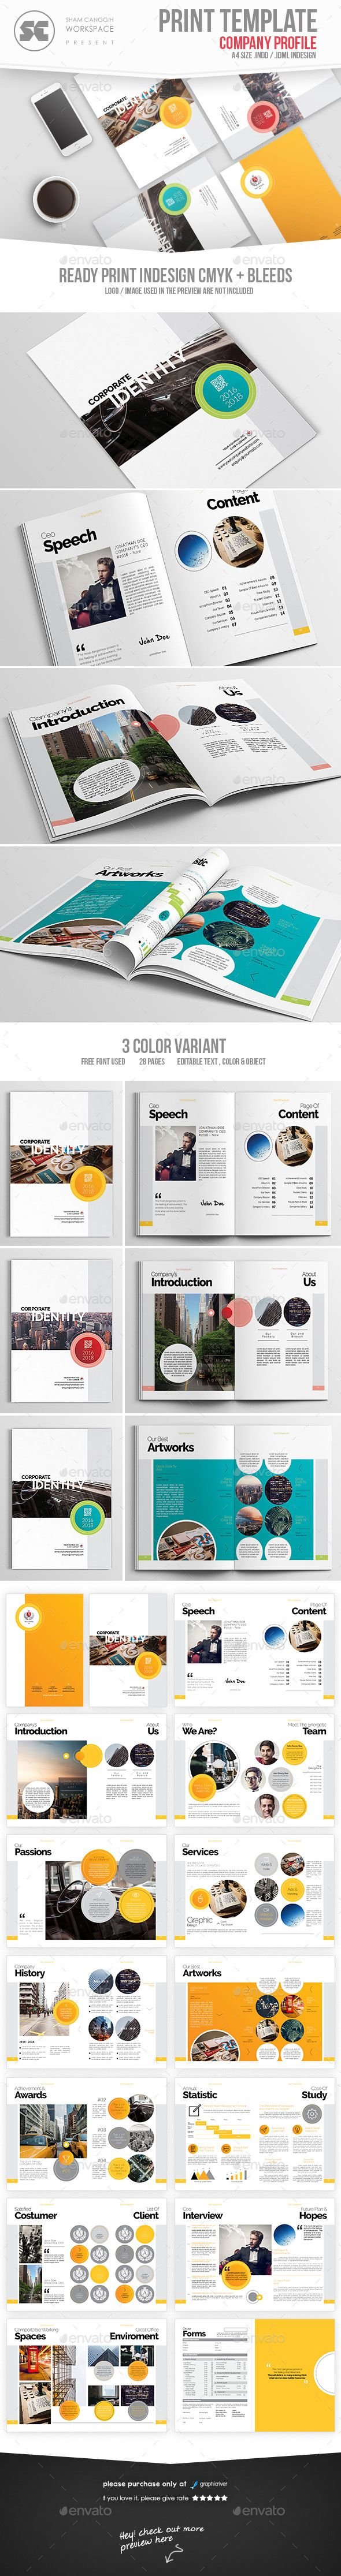 company profile brochure template - 1000 images about work on pinterest the flyer save the